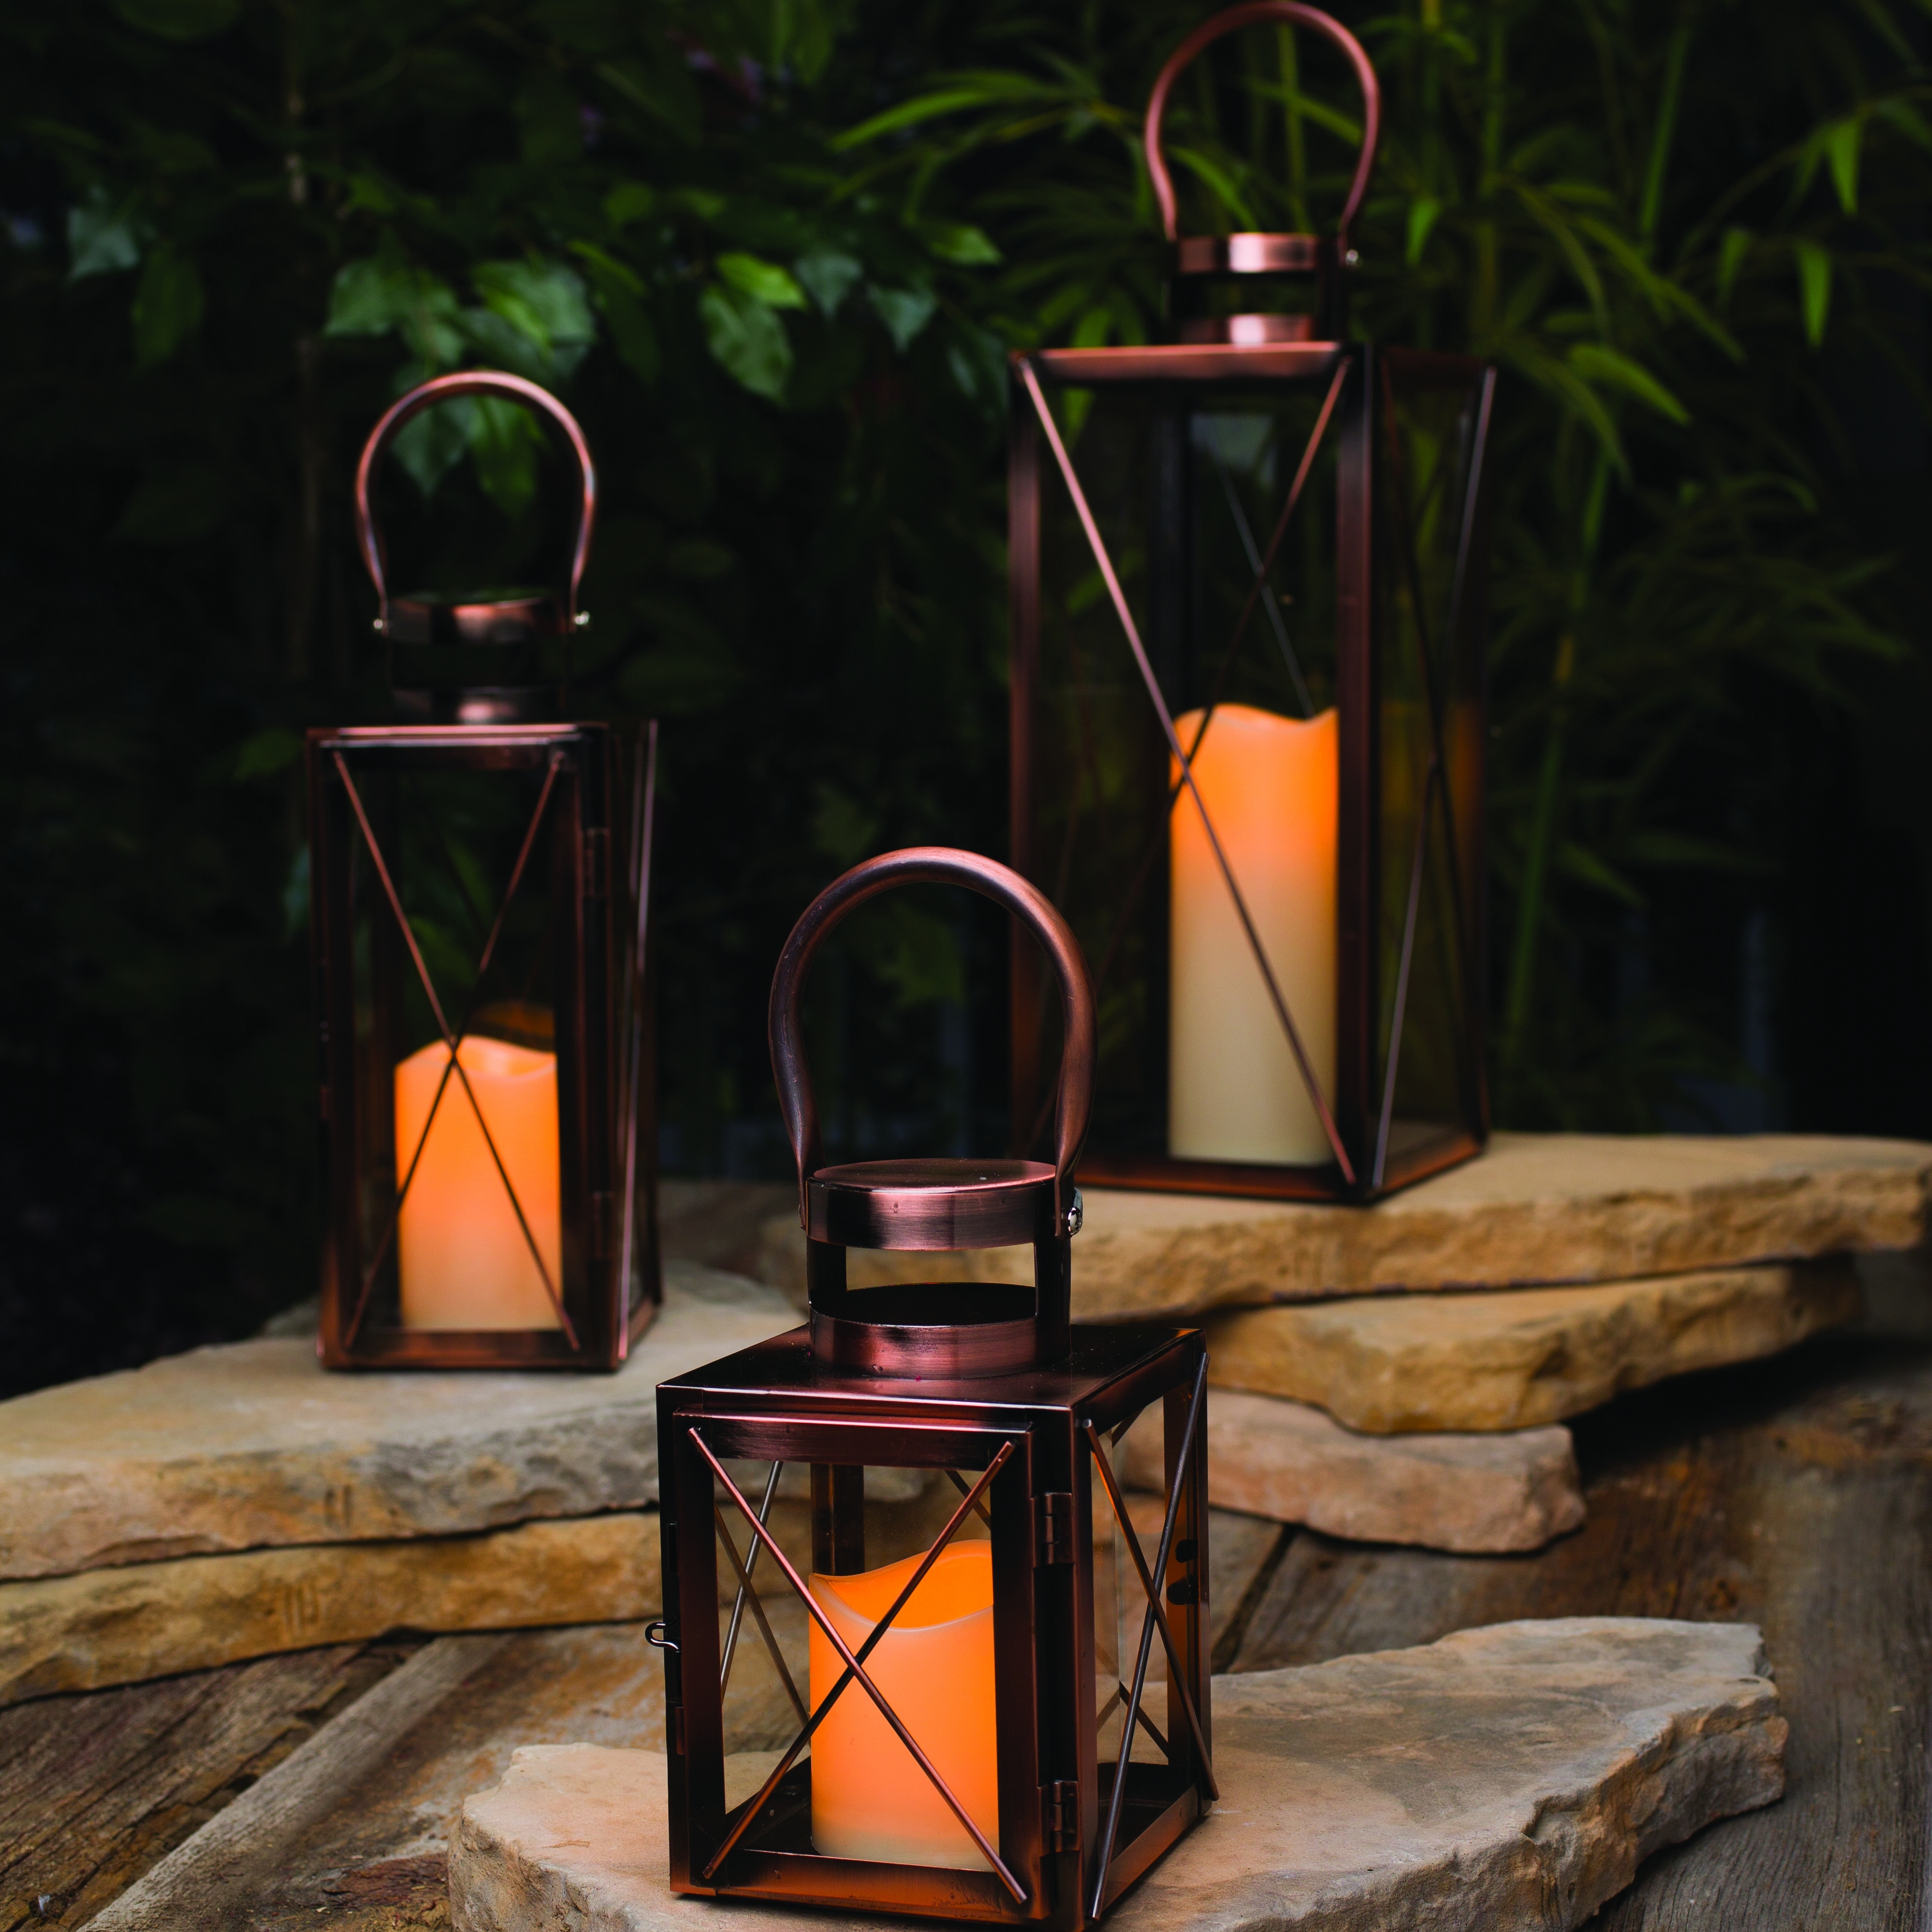 Current Outdoor Electric Candle Lighting Bamboo Lanterns For A Pool Party Intended For Outdoor Bamboo Lanterns (Gallery 17 of 20)